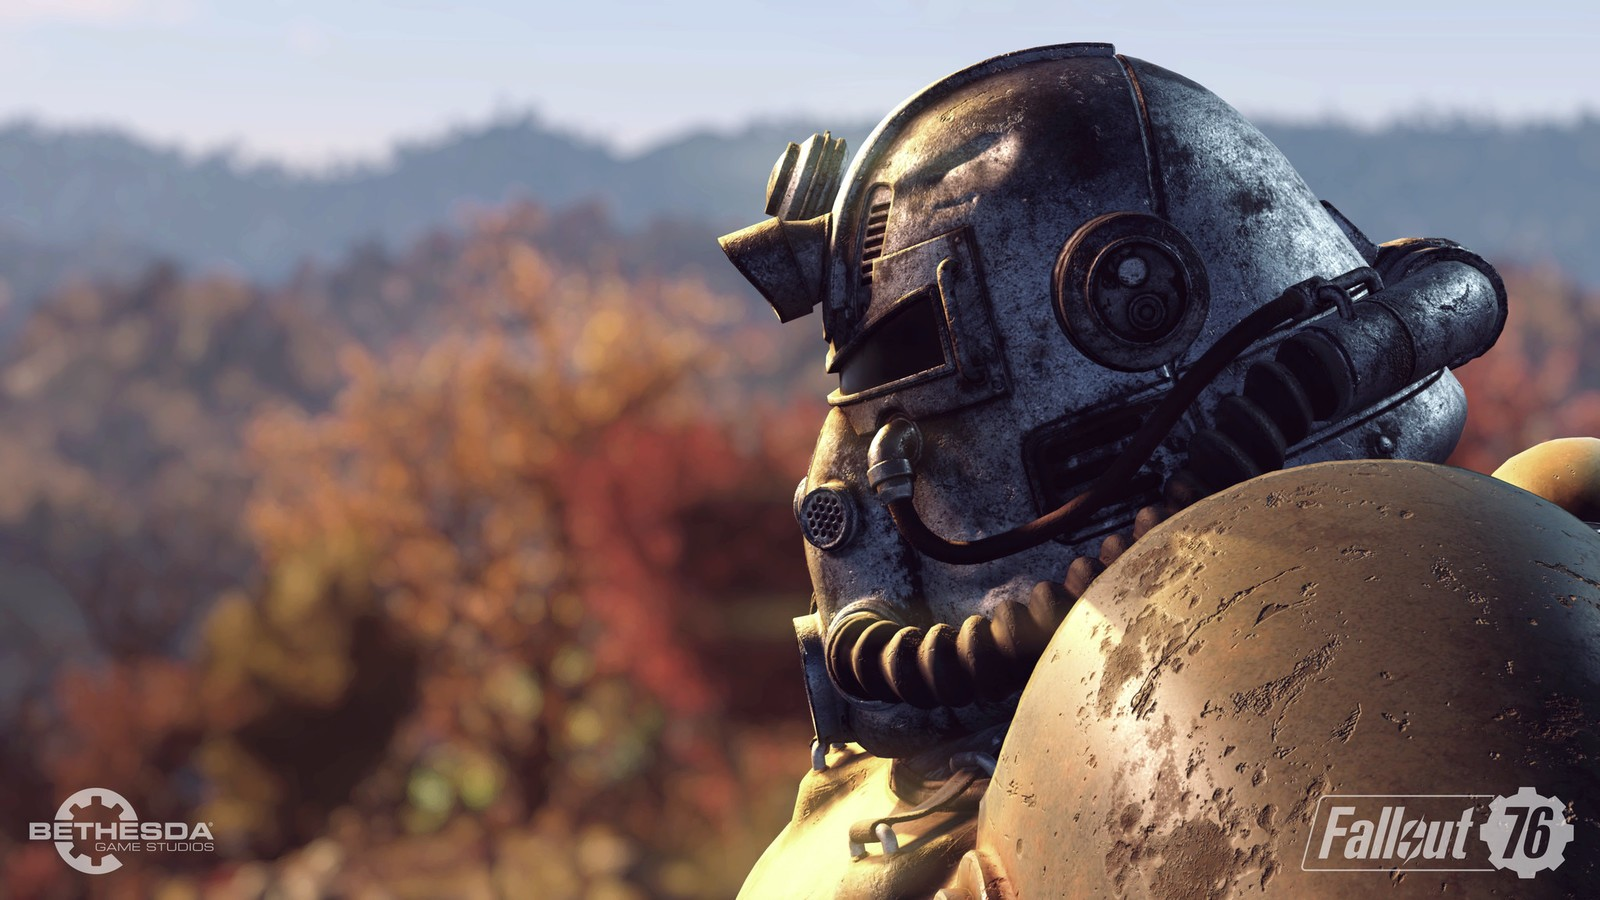 New Fallout 76 Details Unveiled Ahead Of Beta